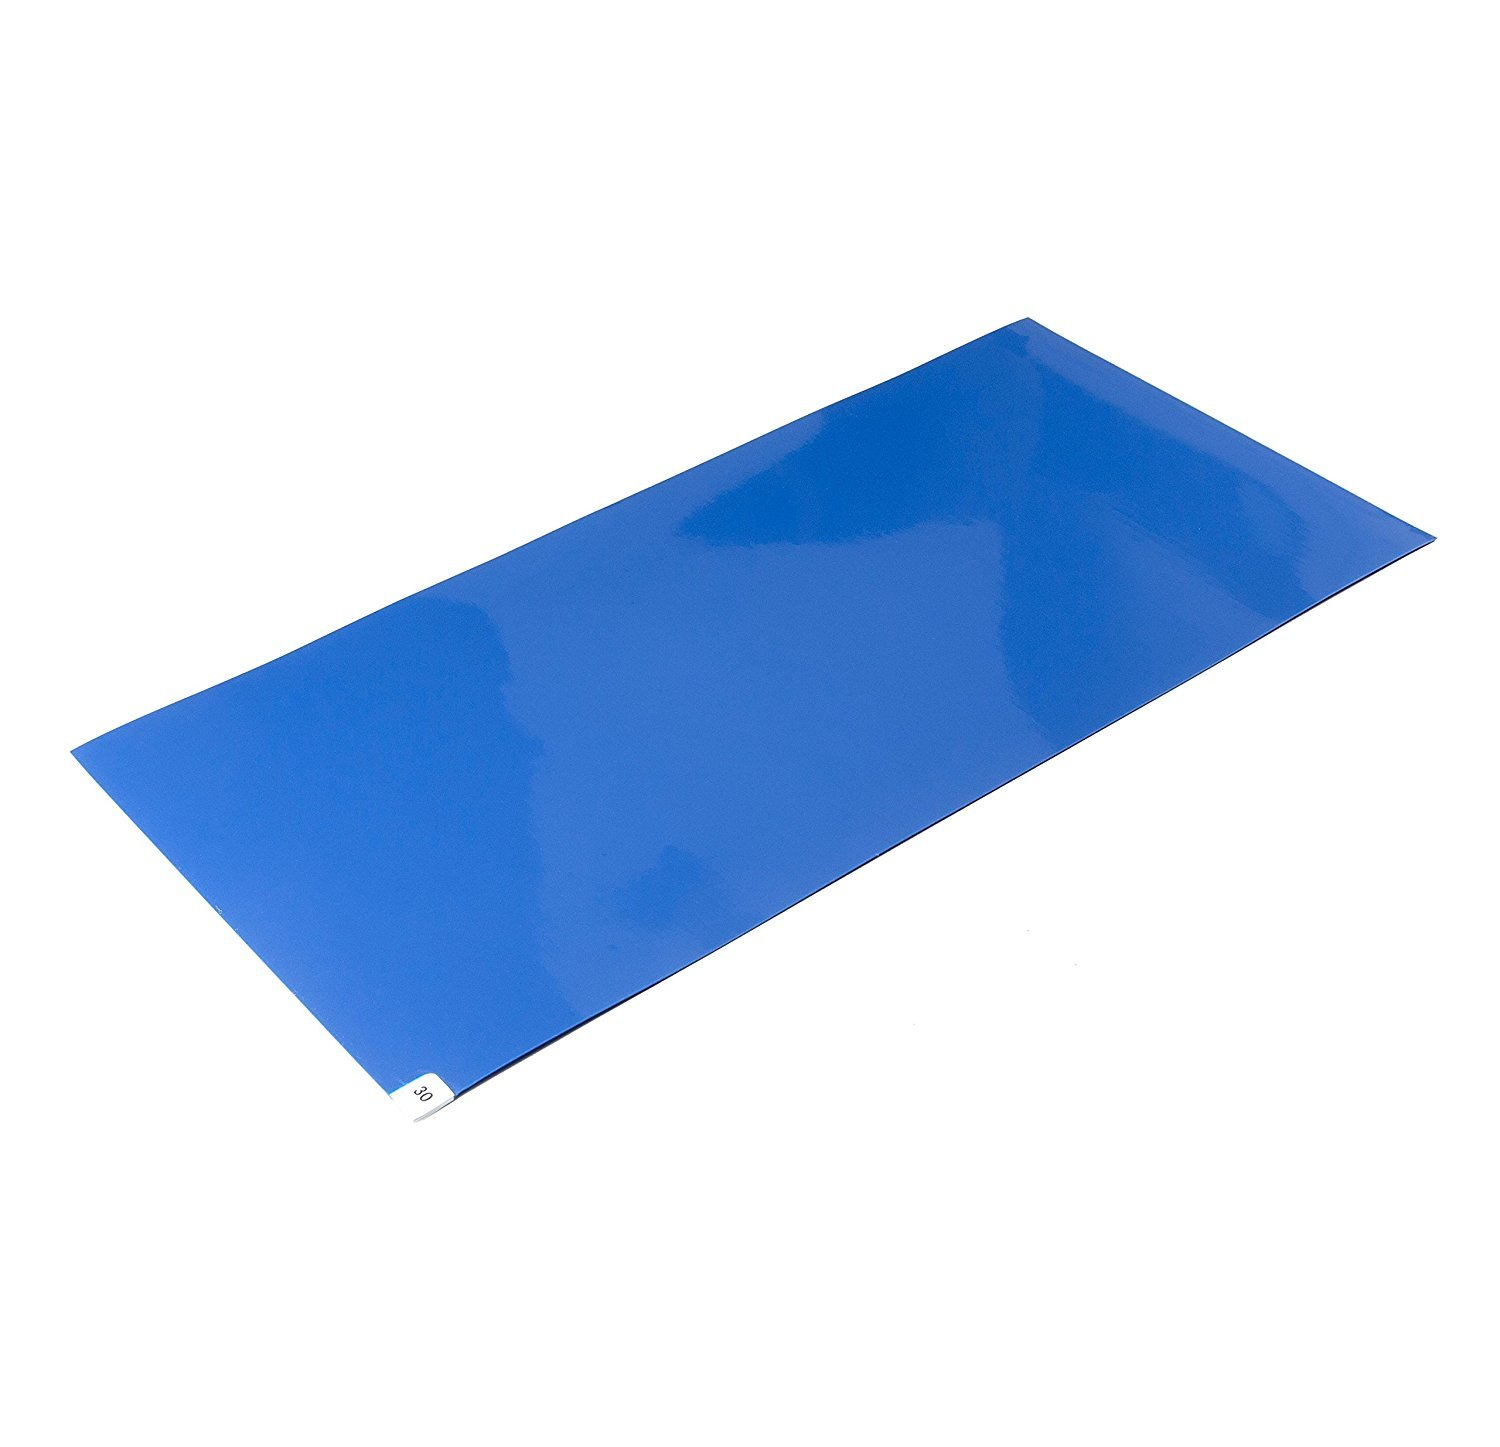 CleanPro Blue Adhesive Sticky/Tacky Mats, 18'' x 36'' (Case of 4, 30 Sheets/Mat)